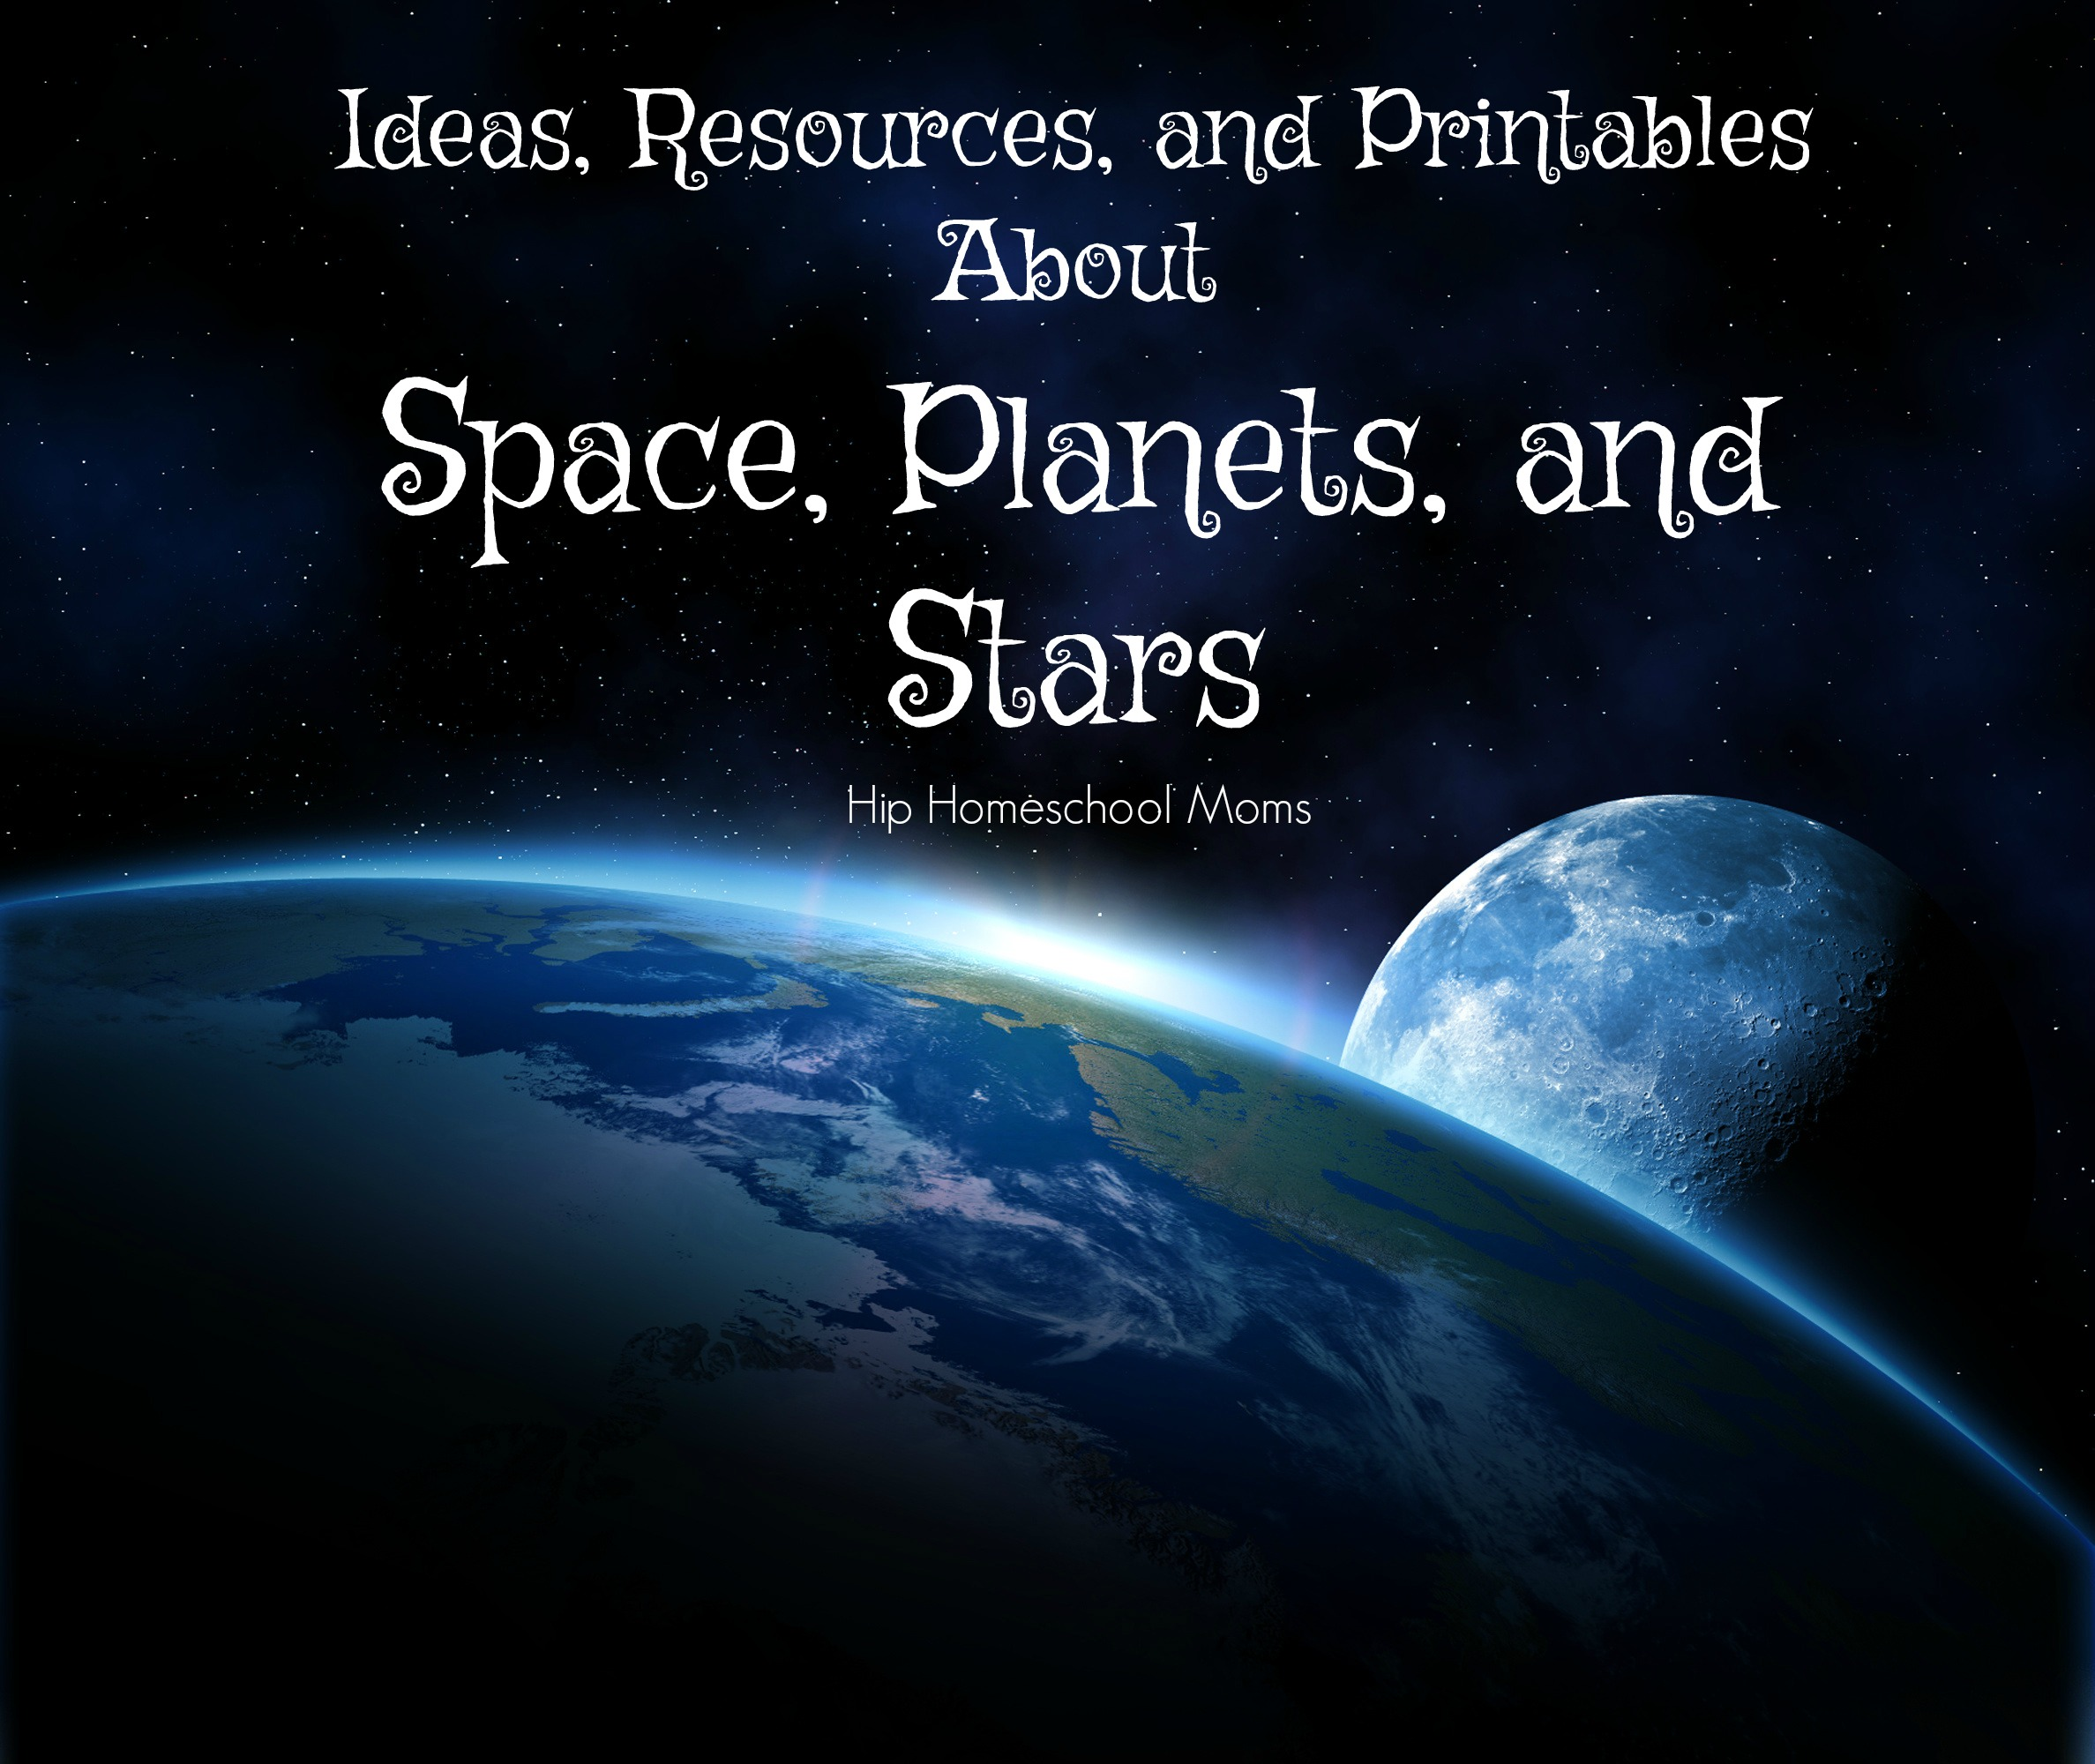 Ideas, Resources, and Activities About Space, Planets, and Stars